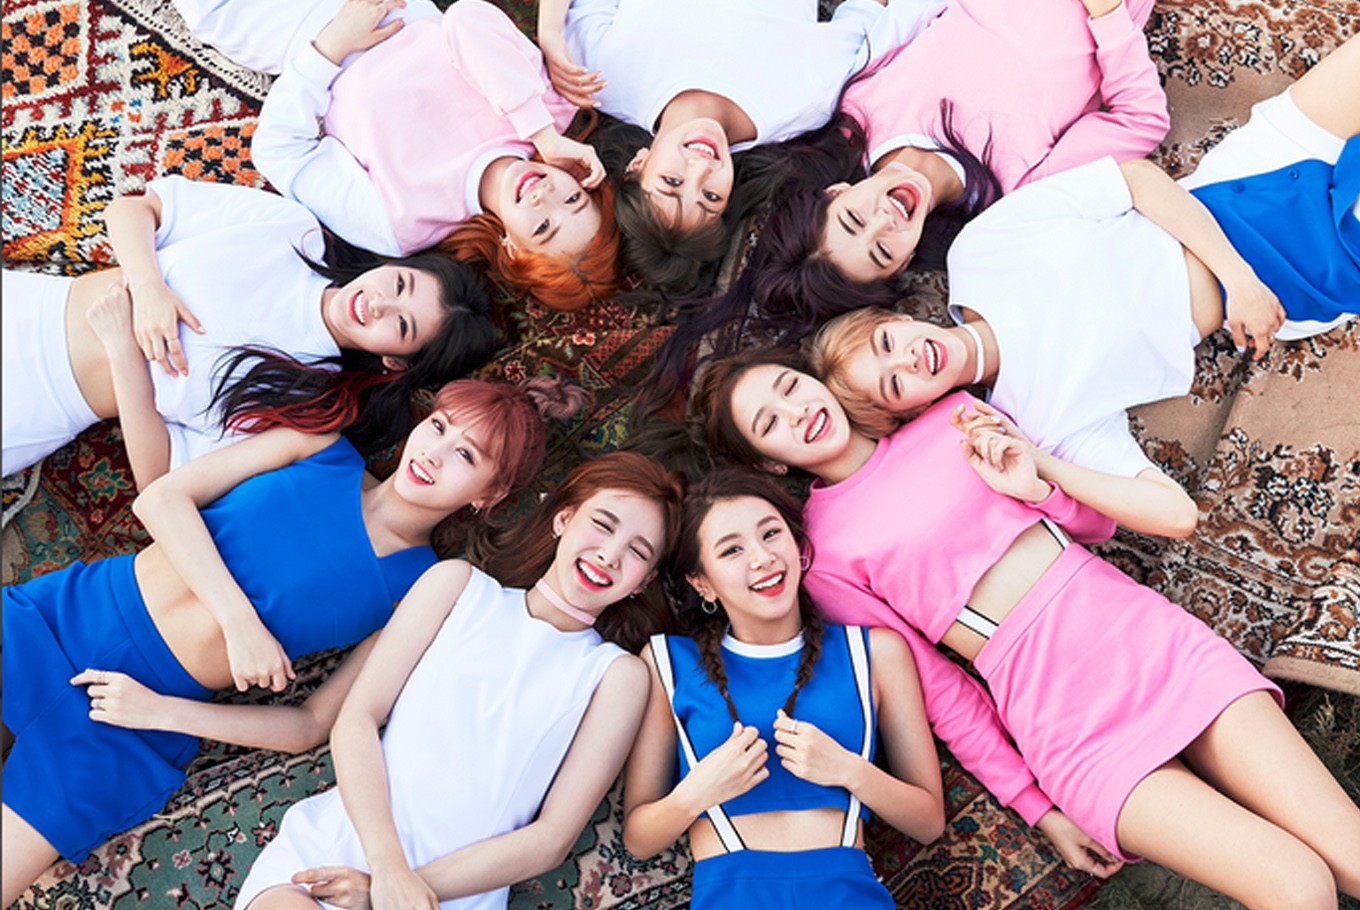 Twice's 'TT' MV breaks K-pop YouTube view record